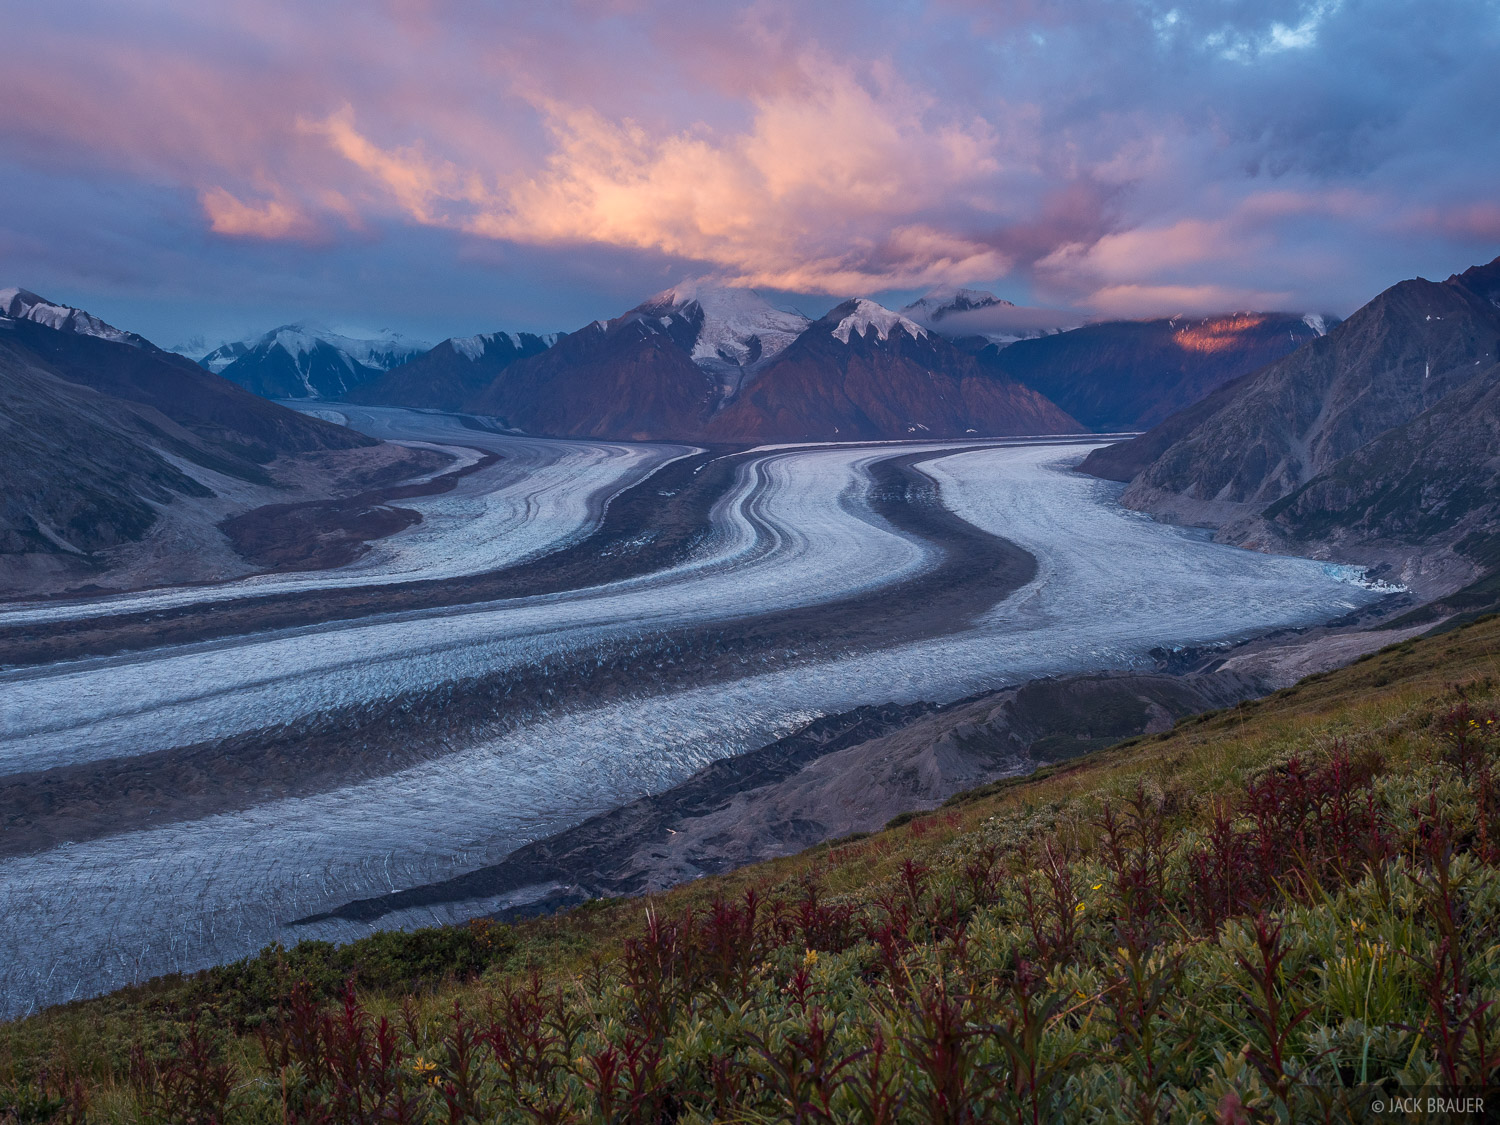 Canada, Kaskawulsh Glacier, Kluane National Park, Slims River, Yukon, photo